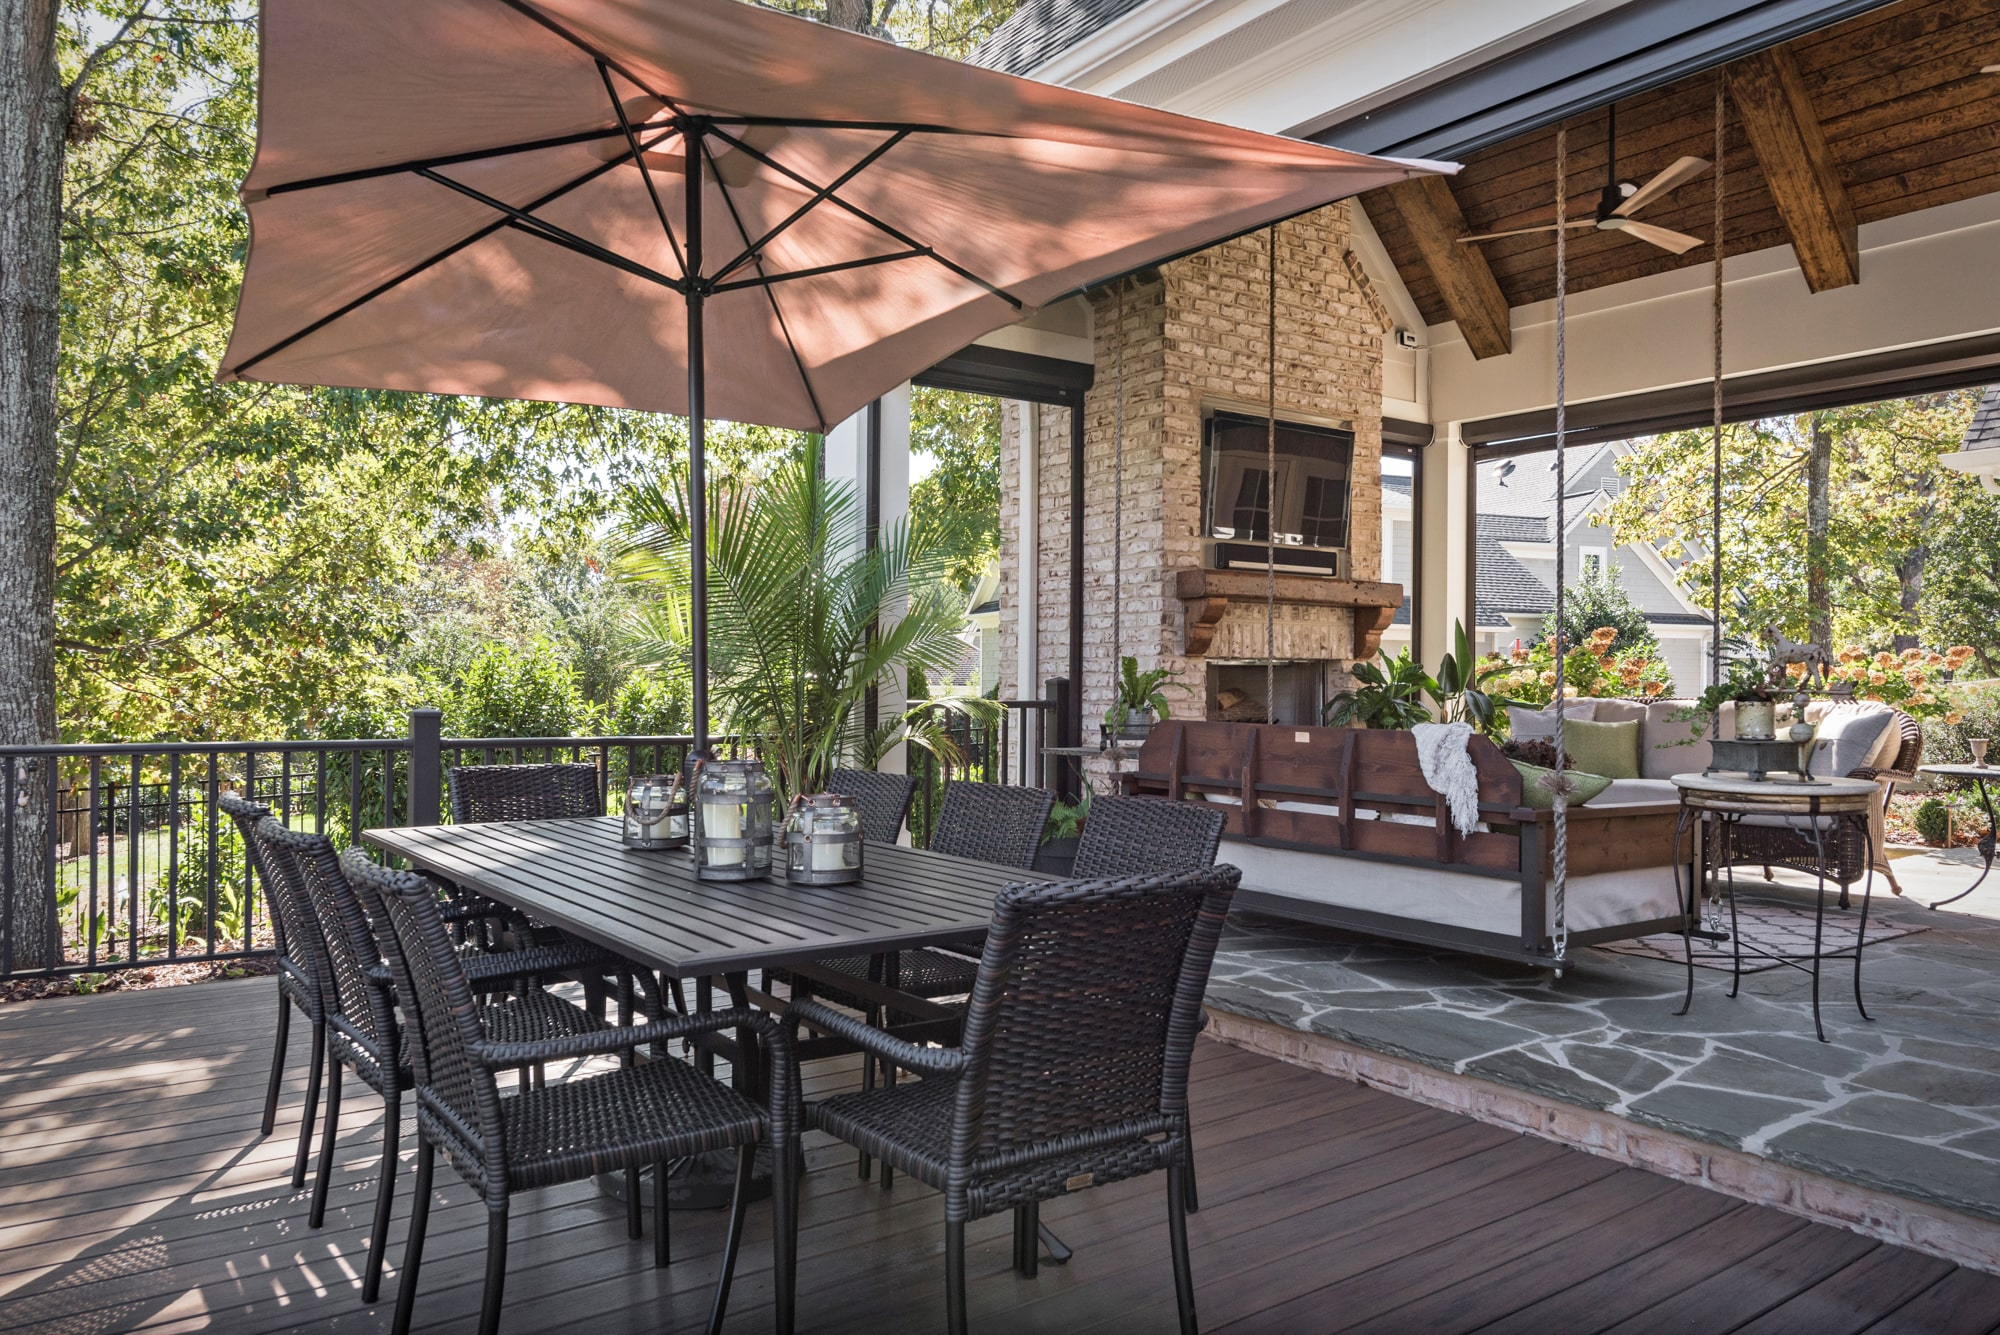 Just off the screen porch, you step down to a composite deck that is great for dining as well as grilling.